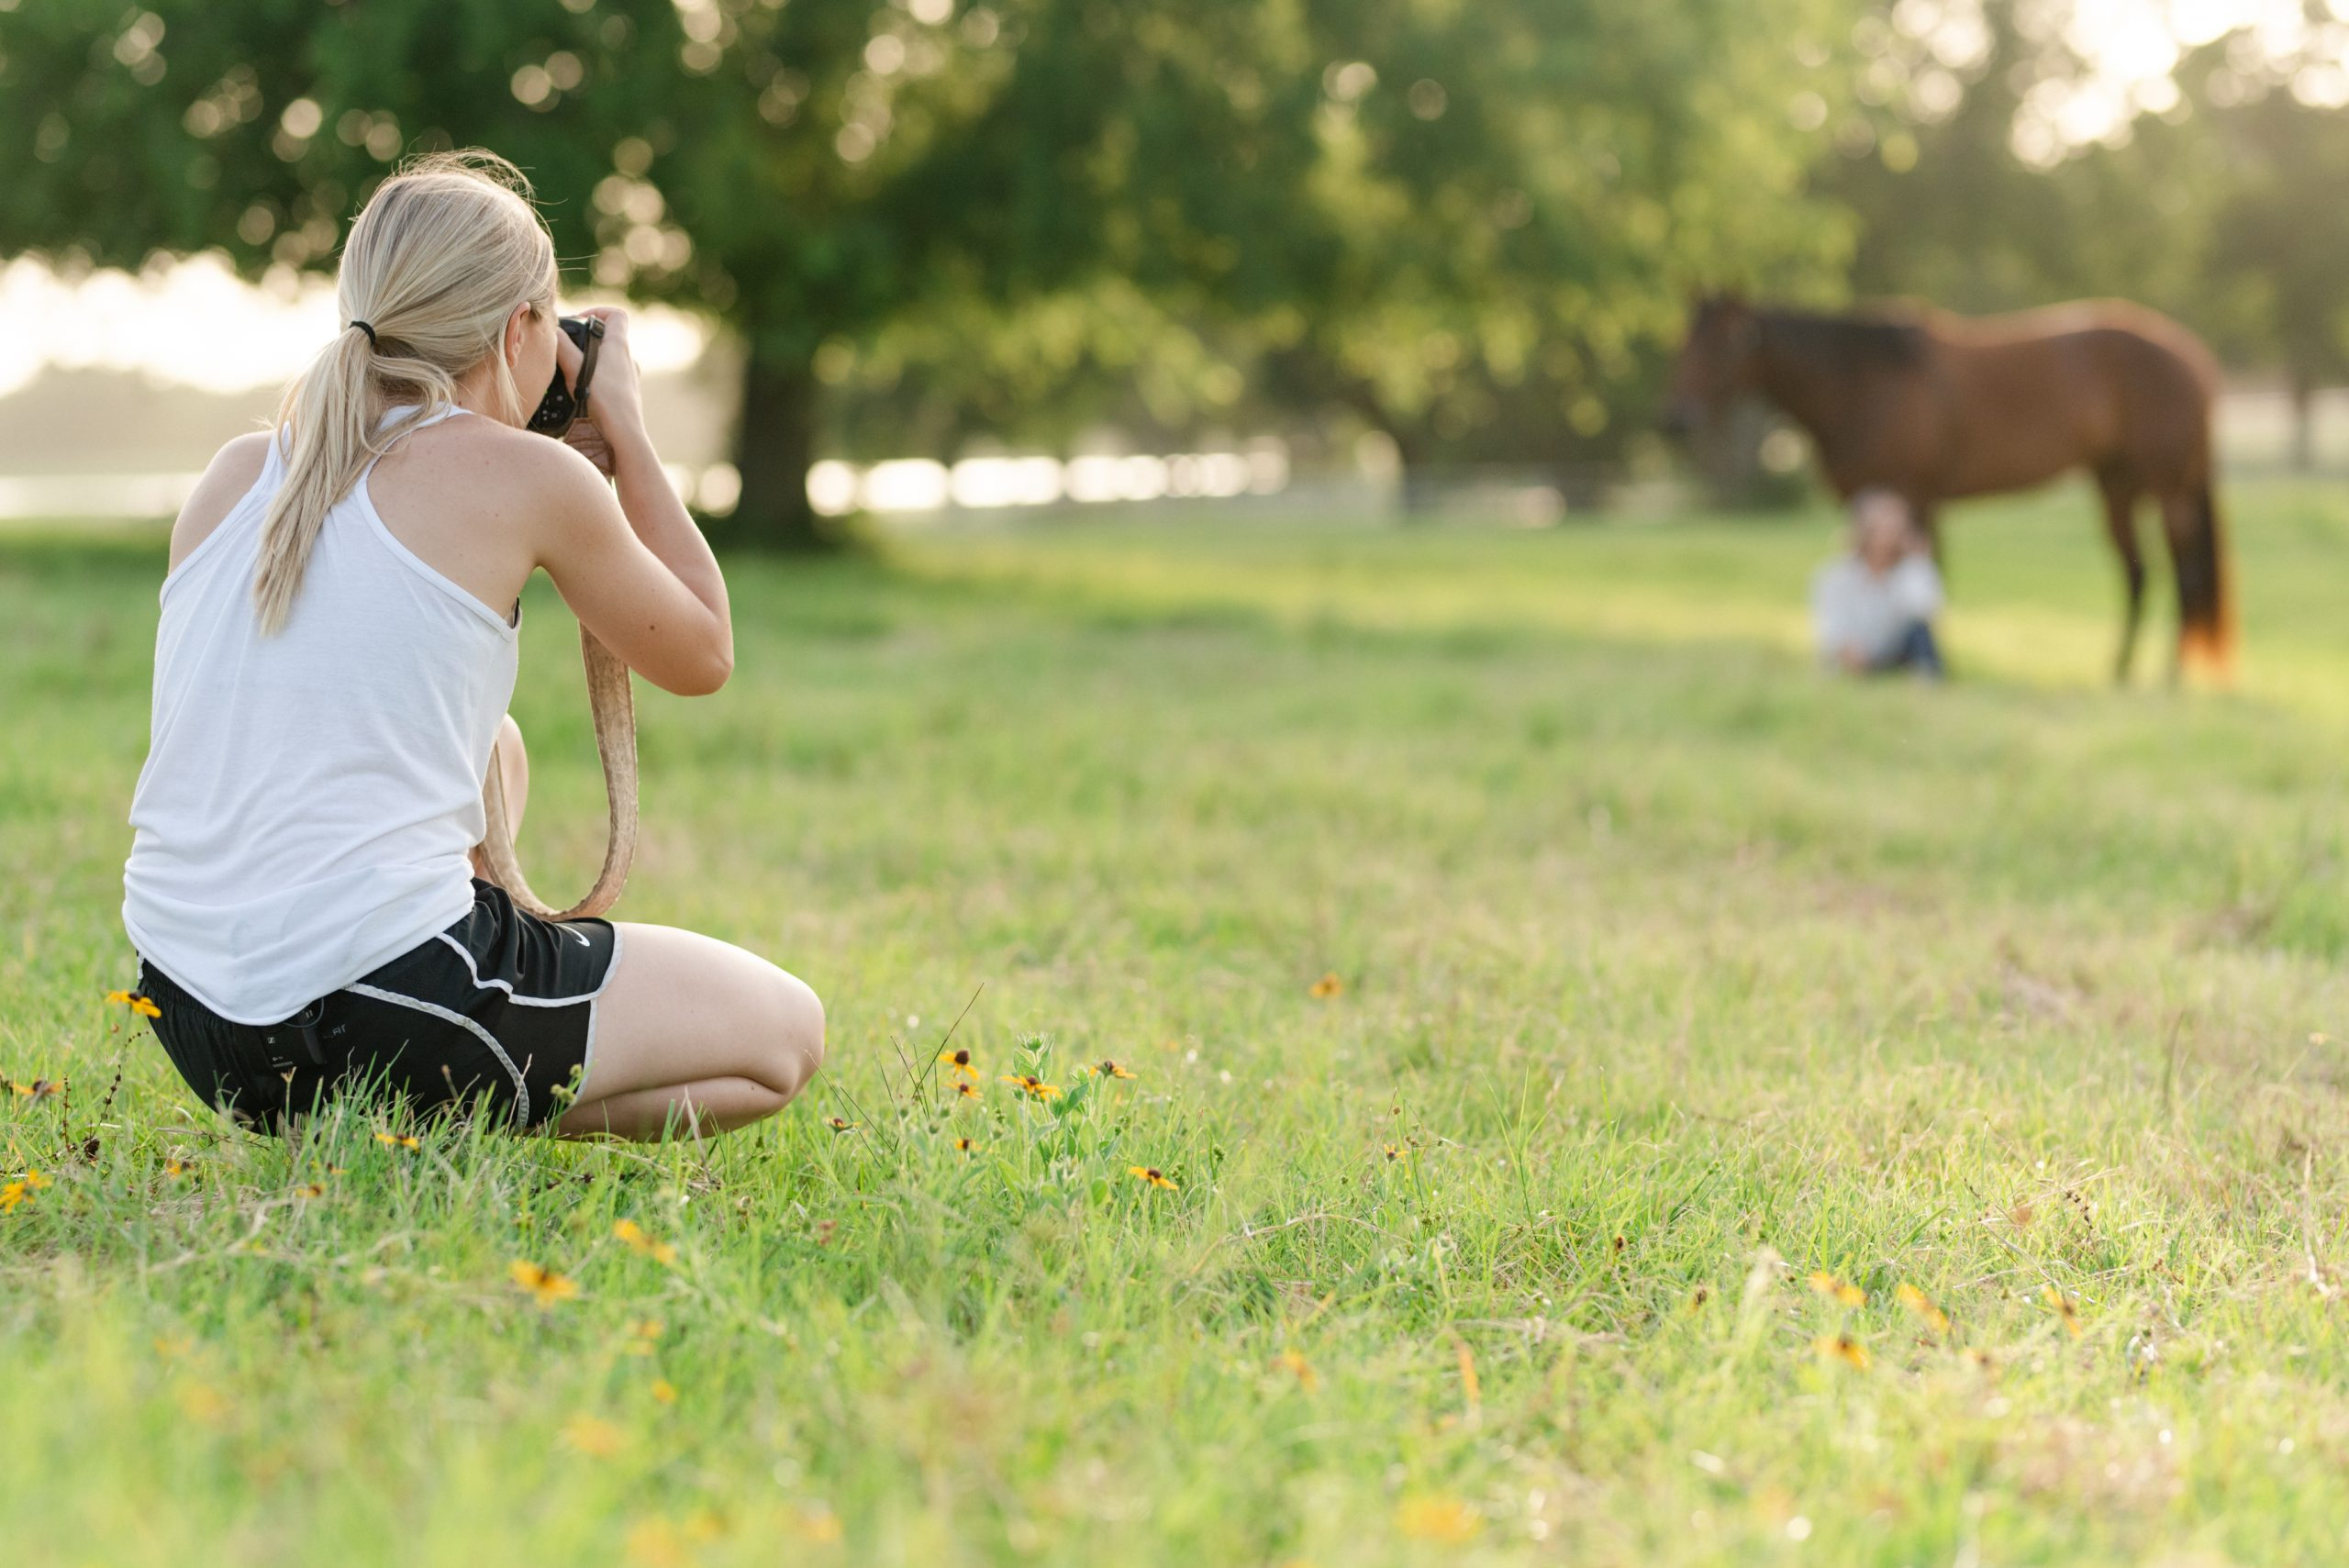 Video of KMP photographing outside with a young girl and horse